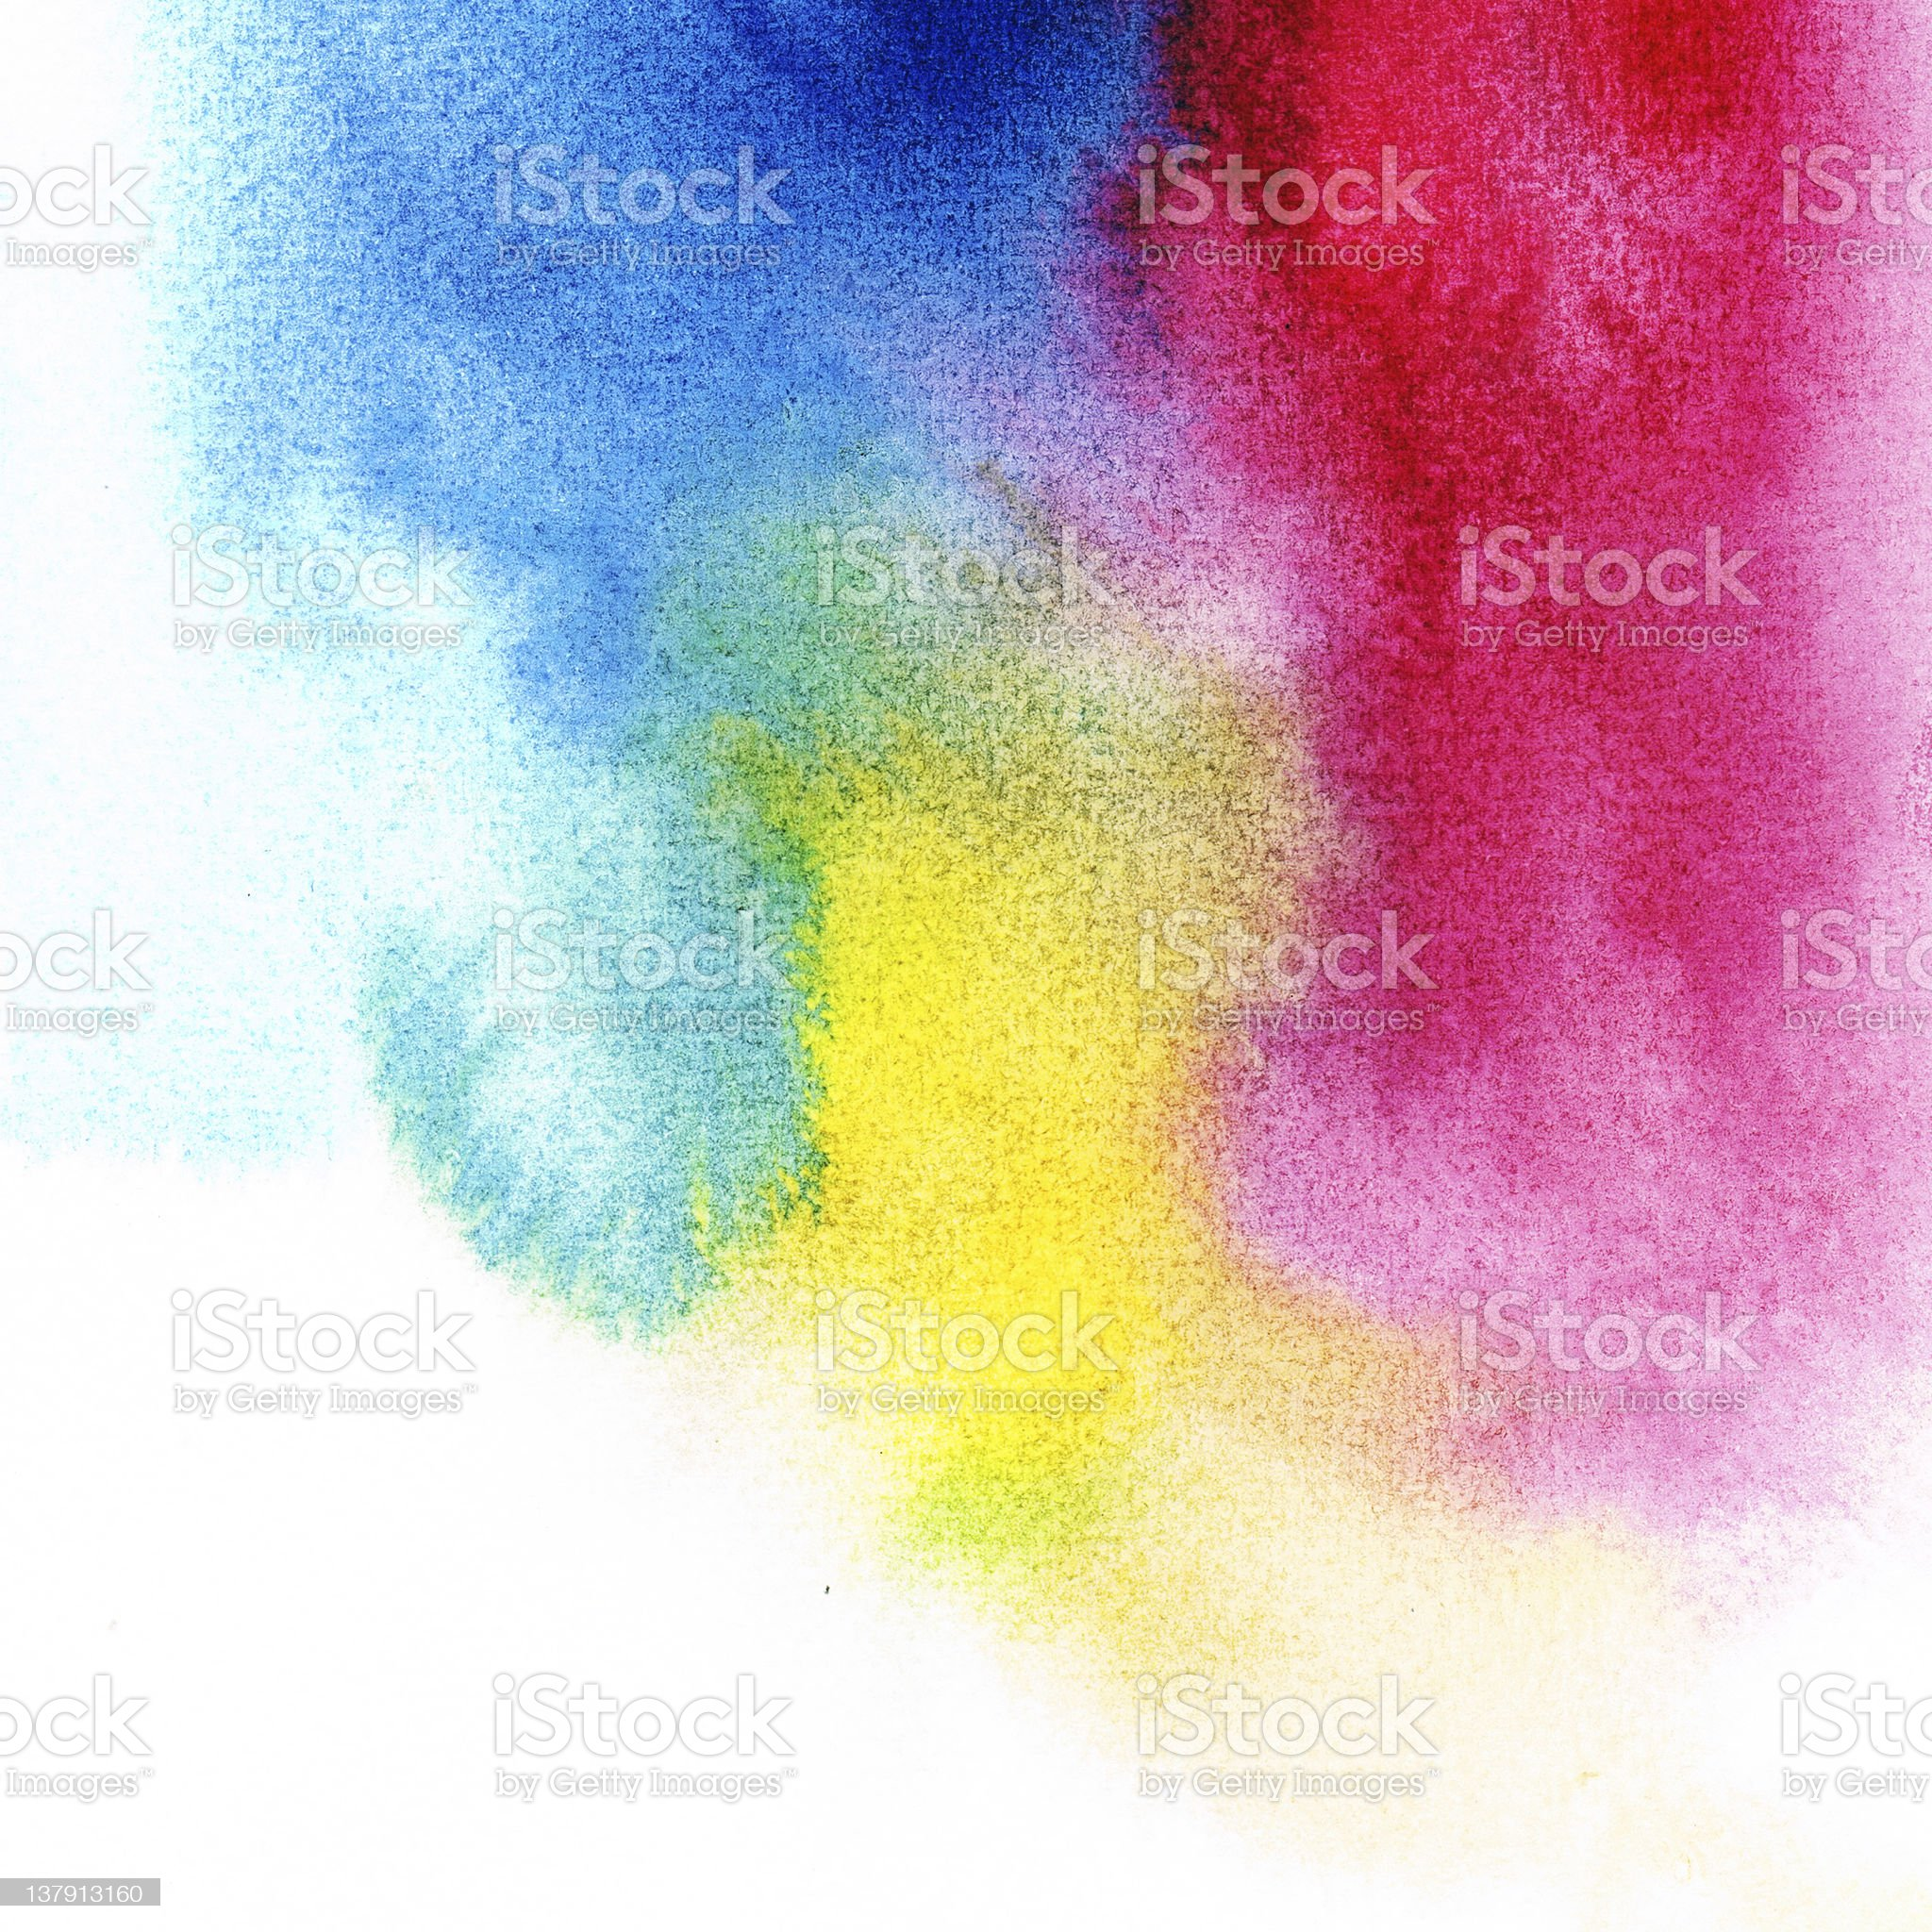 Abstract primary colors watercolors royalty-free stock vector art